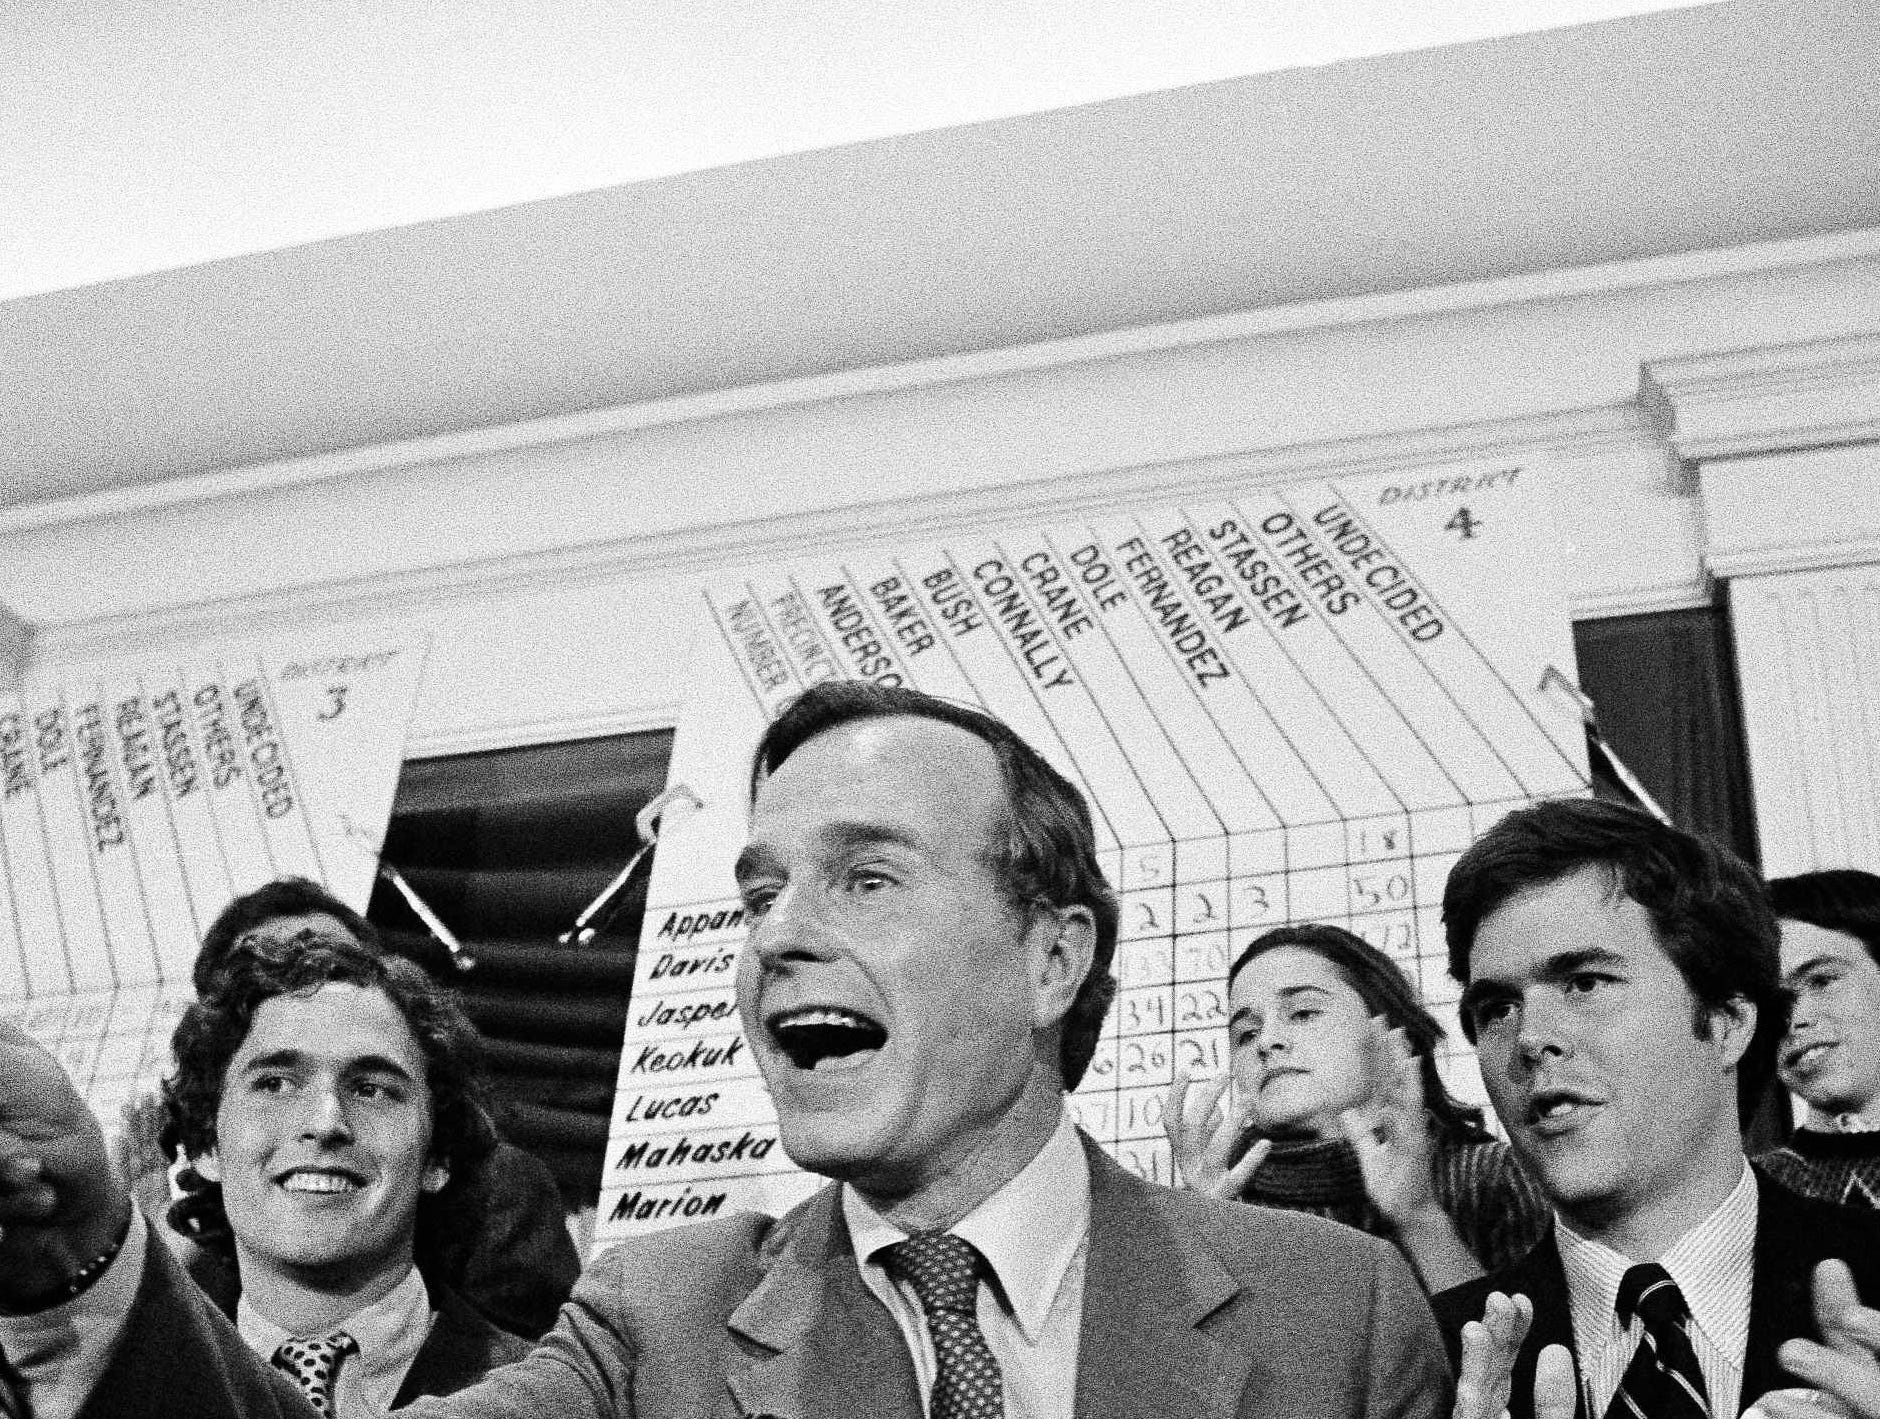 George Bush acknowledges cheers at the Republican caucus headquarters in Des Moines, Iowa on January 22, 1980. Bush took a lead over front-runner Ronald Reagan and seven other candidates for the Republican presidential nomination, in the Iowa Republican straw-poll caucus. At far right is Bush's son Jeb. (AP Photo/Jim Mone)